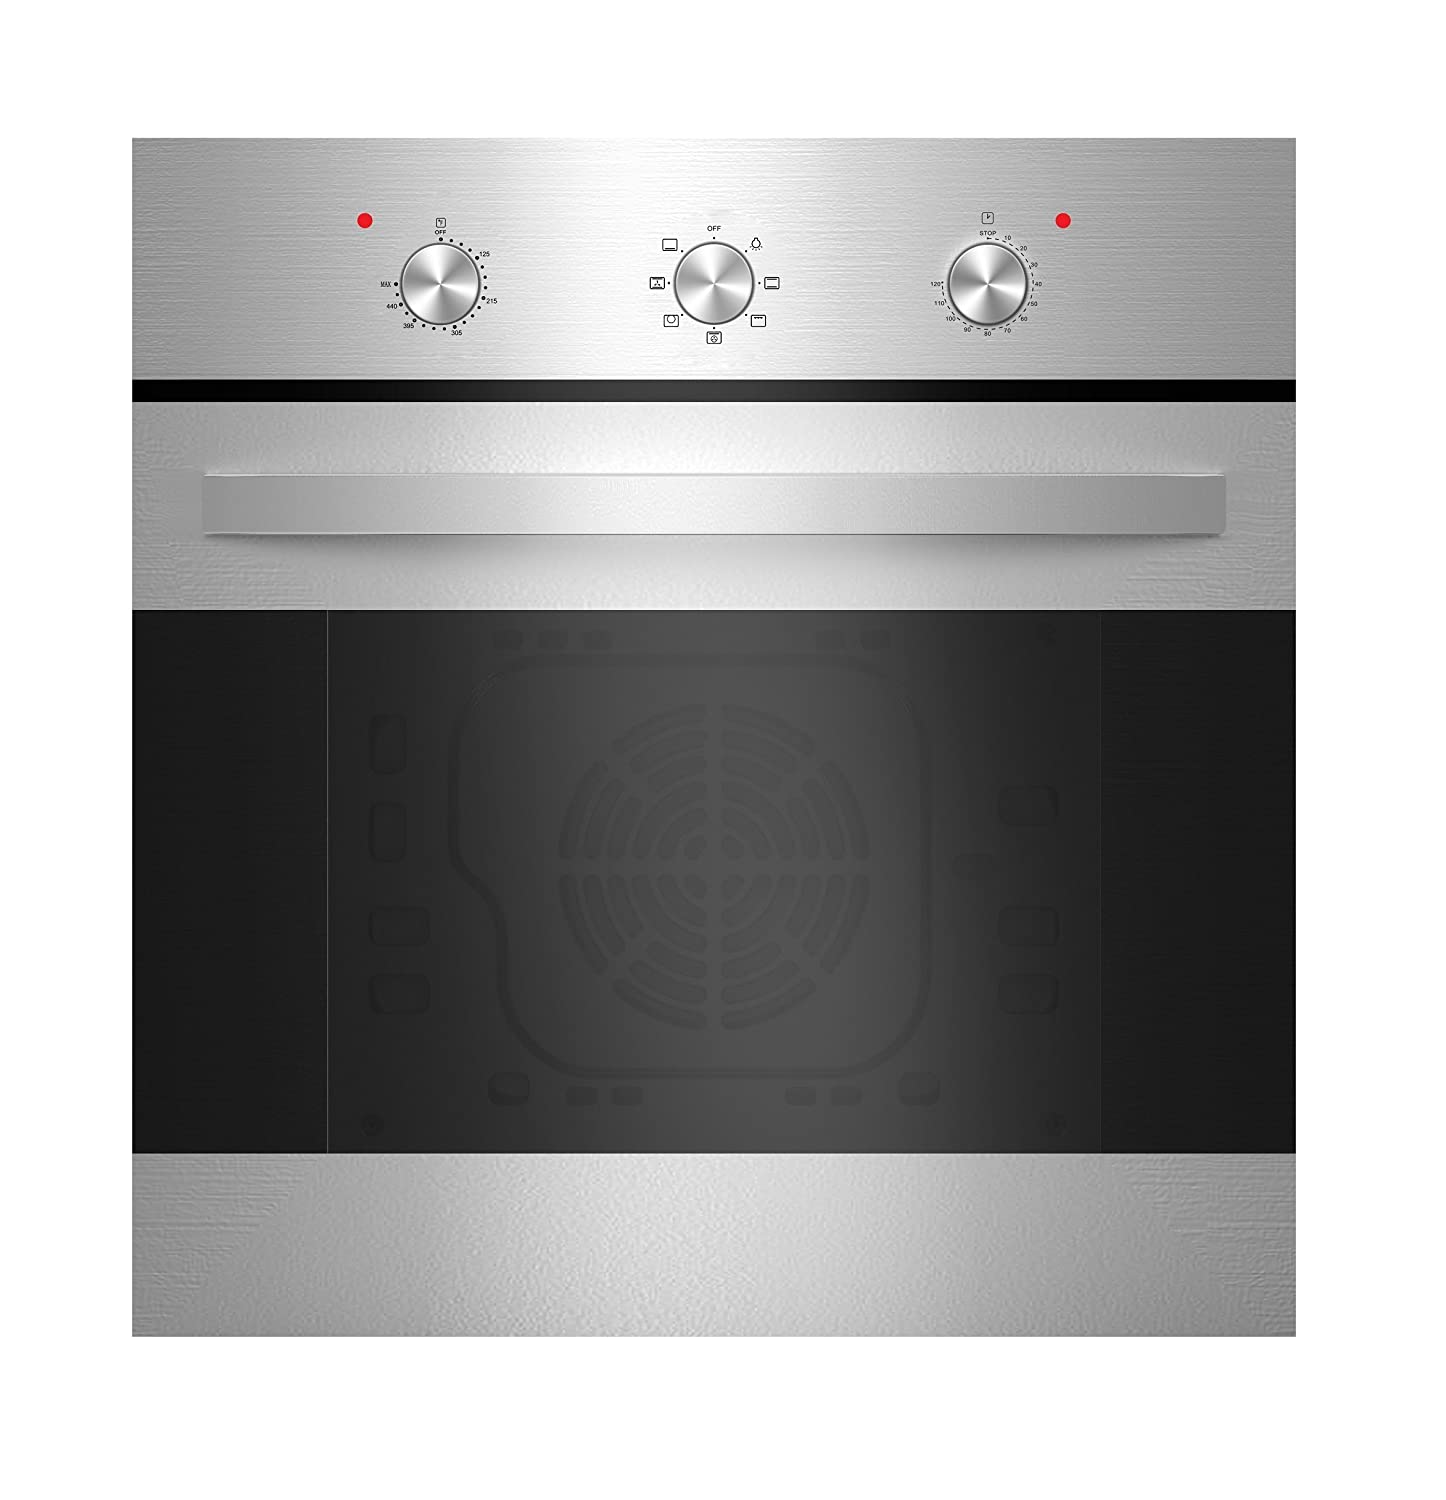 """Amazon.com: Empava 24"""" Stainless Steel 6 Cooking Function Electric Built-in  Single Wall Oven EMPV-24WOB14: Appliances"""